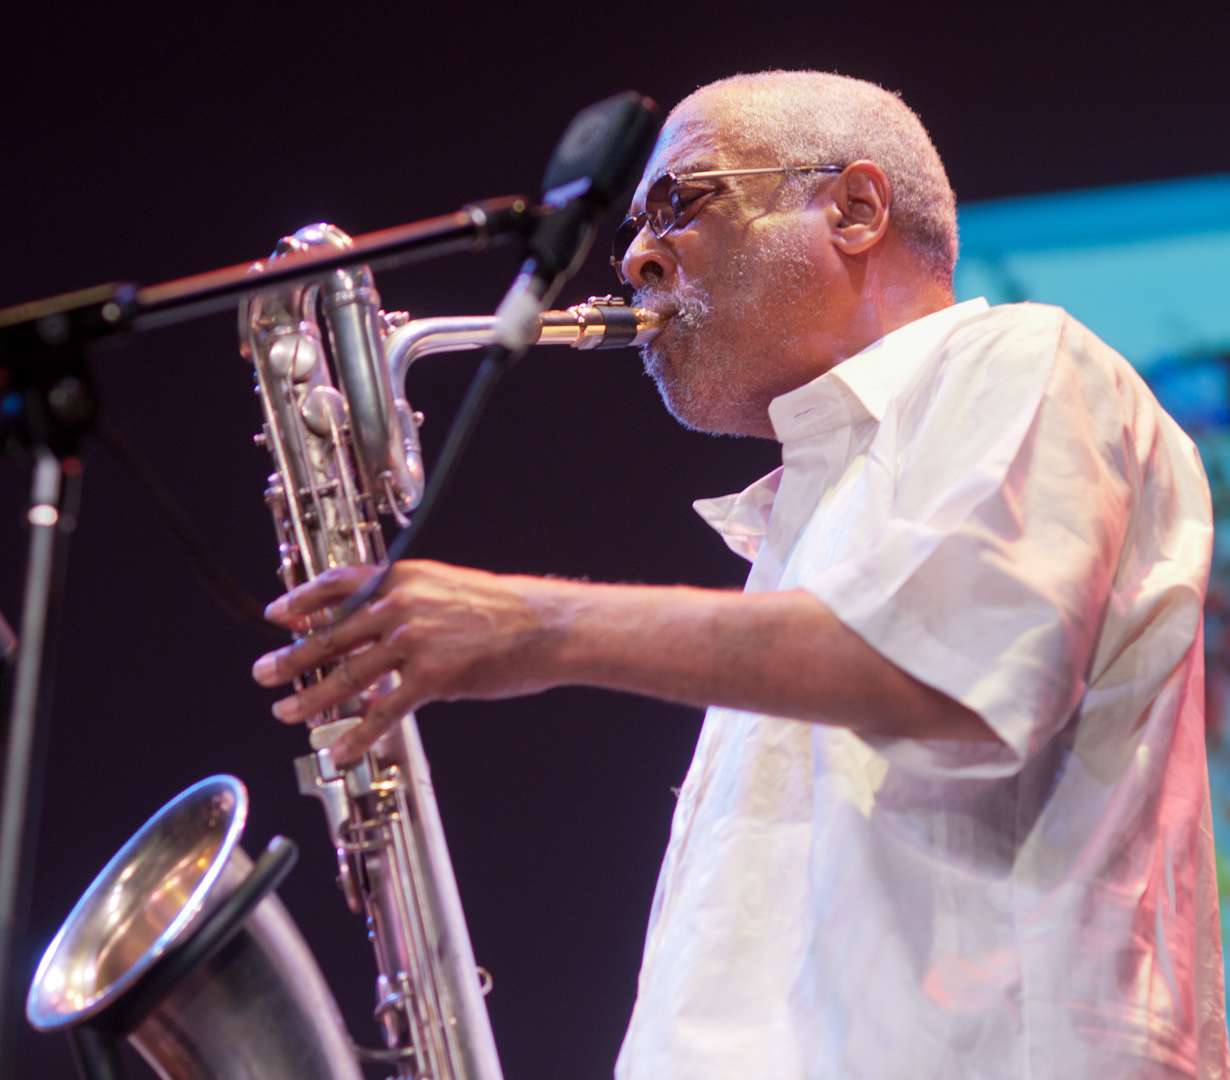 Hamiet Bluiett with the Kidd Jordan Project at the Vision Festival 2011